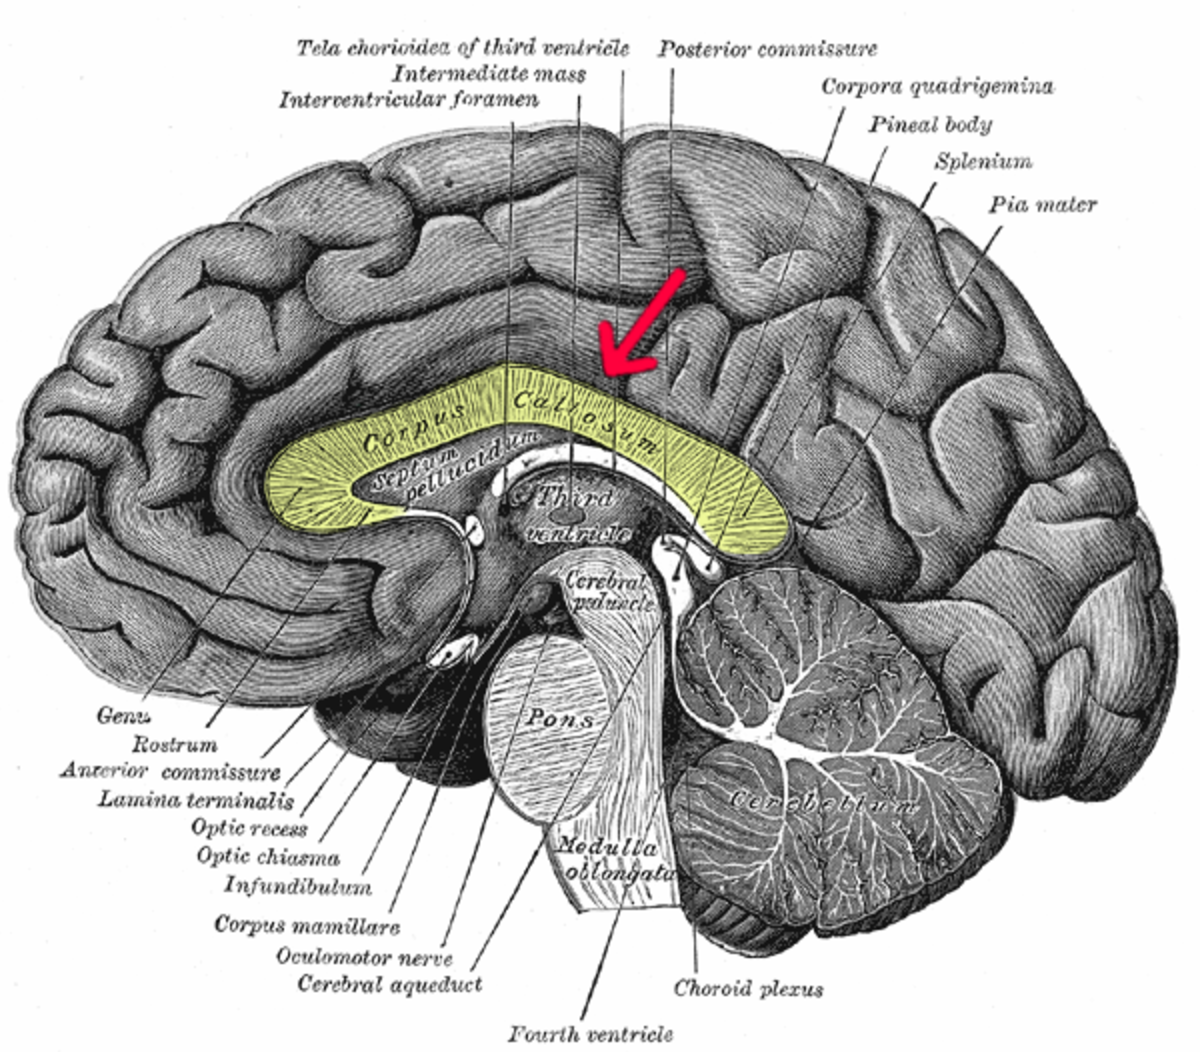 The corpus callosum in the brain